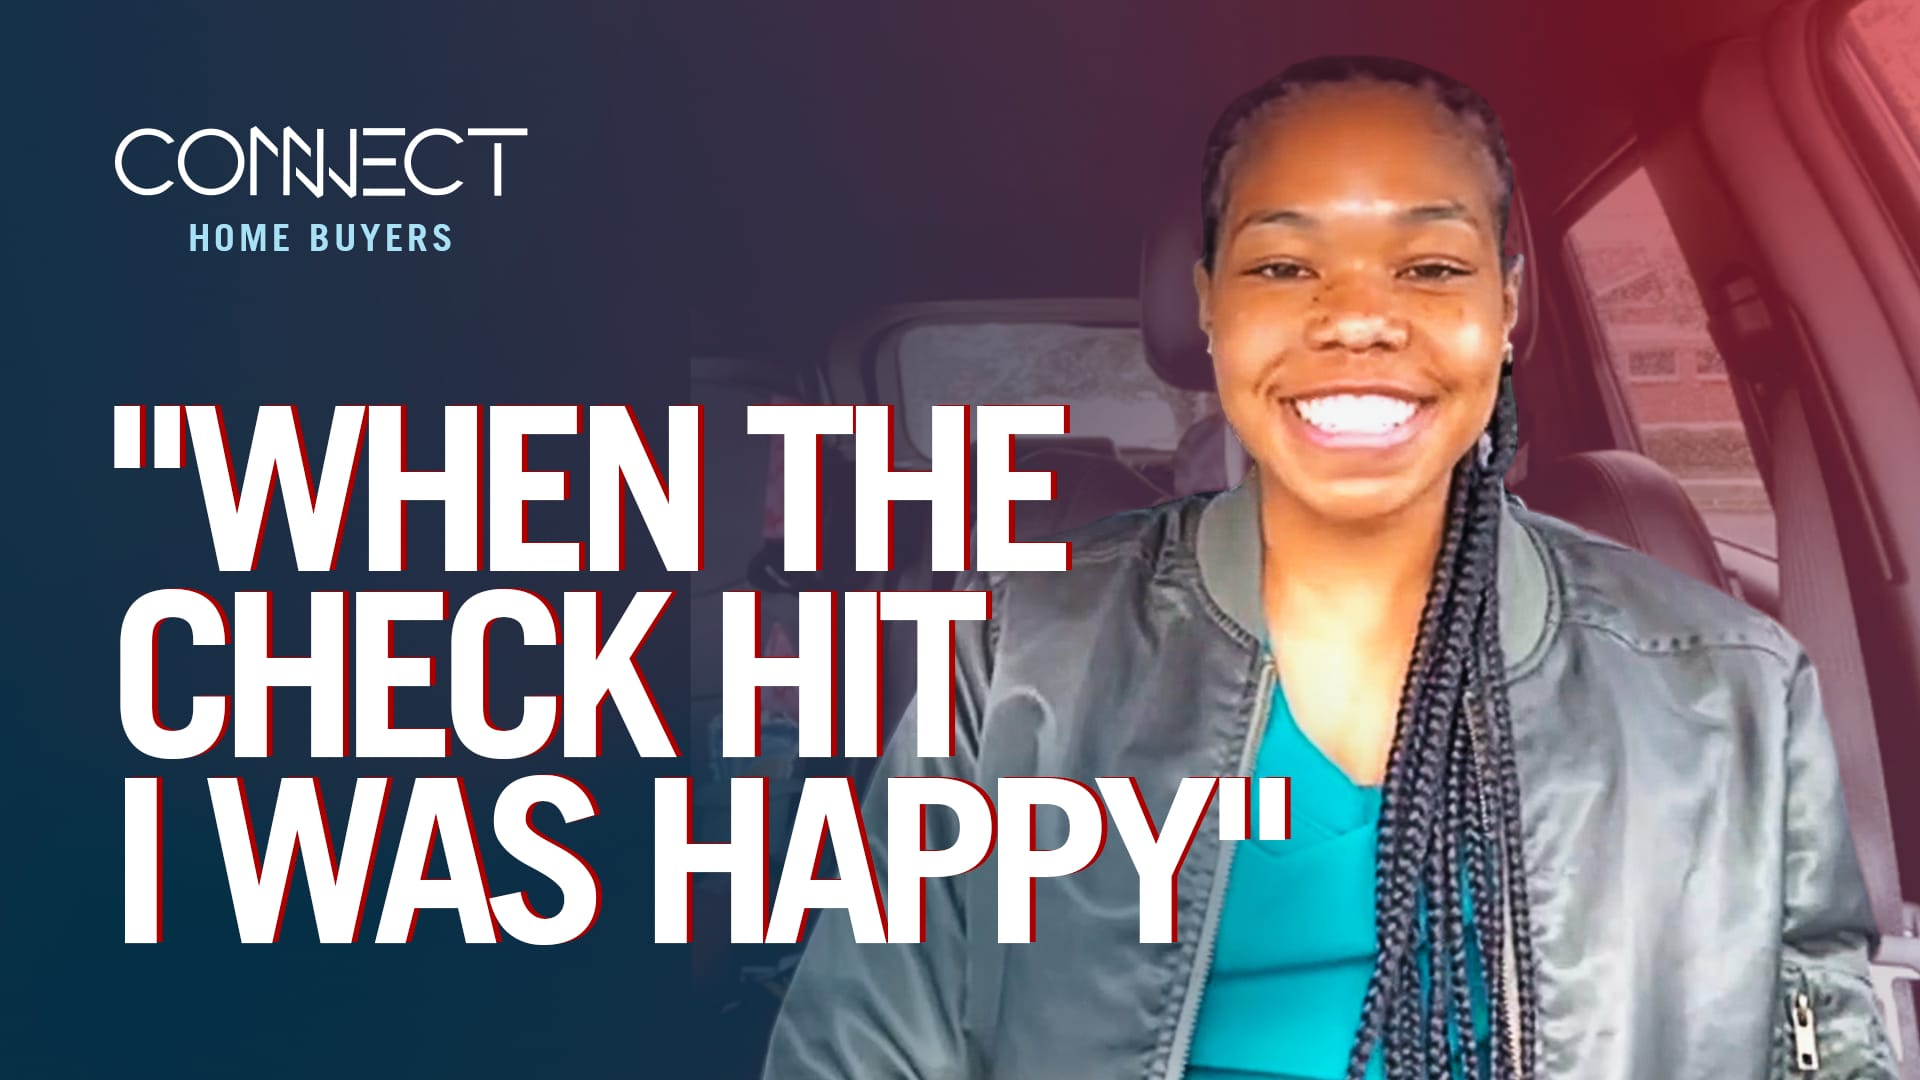 Connect Home Buyers Reviews